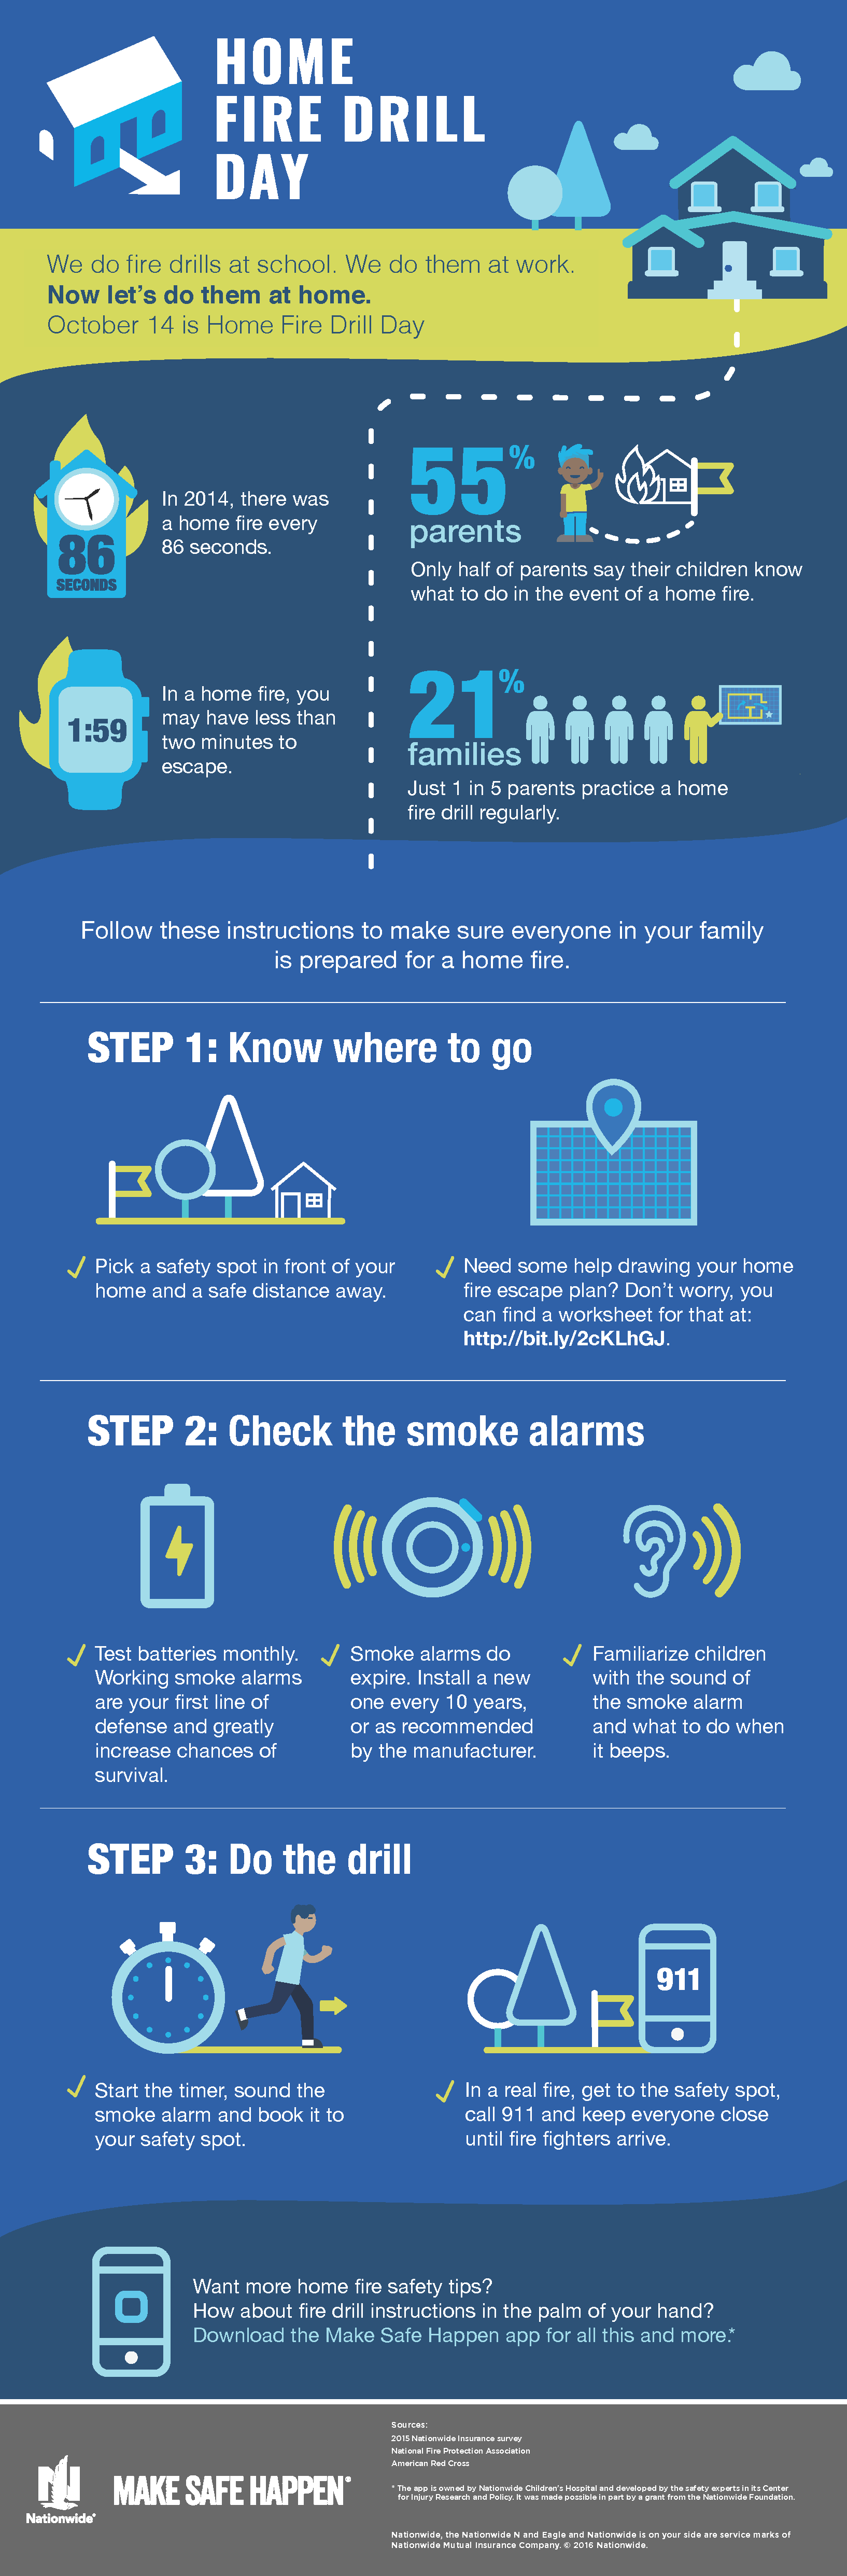 Home Fire Drill Day [Infographic]